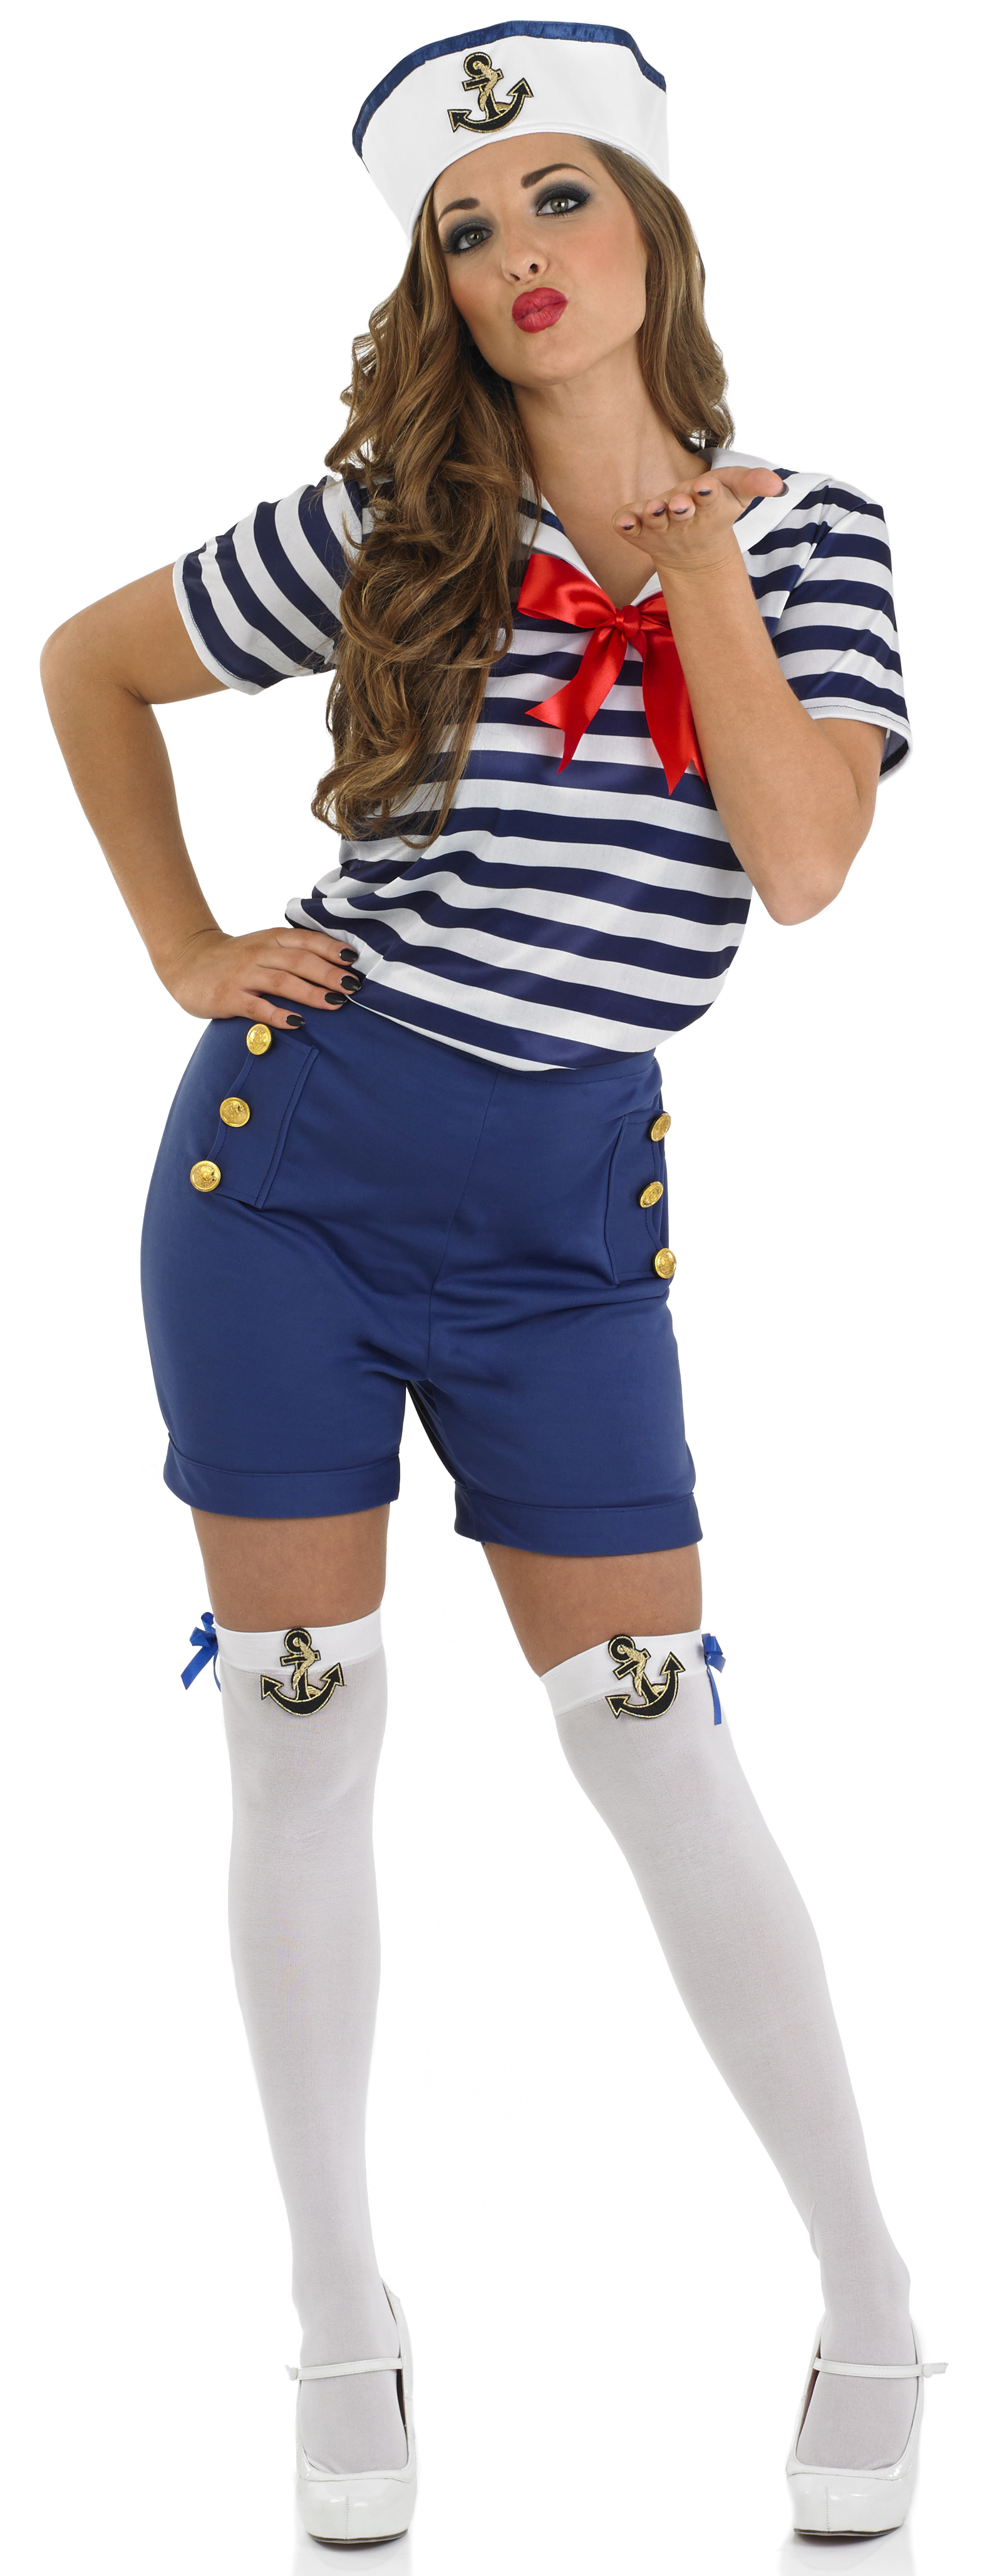 Sailor Costumes. Showing 40 of results that match your query. Search Product Result. Product - Rubies Costume Co. Womens Sailor Halloween Costume. Product Image. Product - Funny Fashion Sexy Cute Womens Navy Sailor Halloween Costume. Product Image. Price $ 65 - .